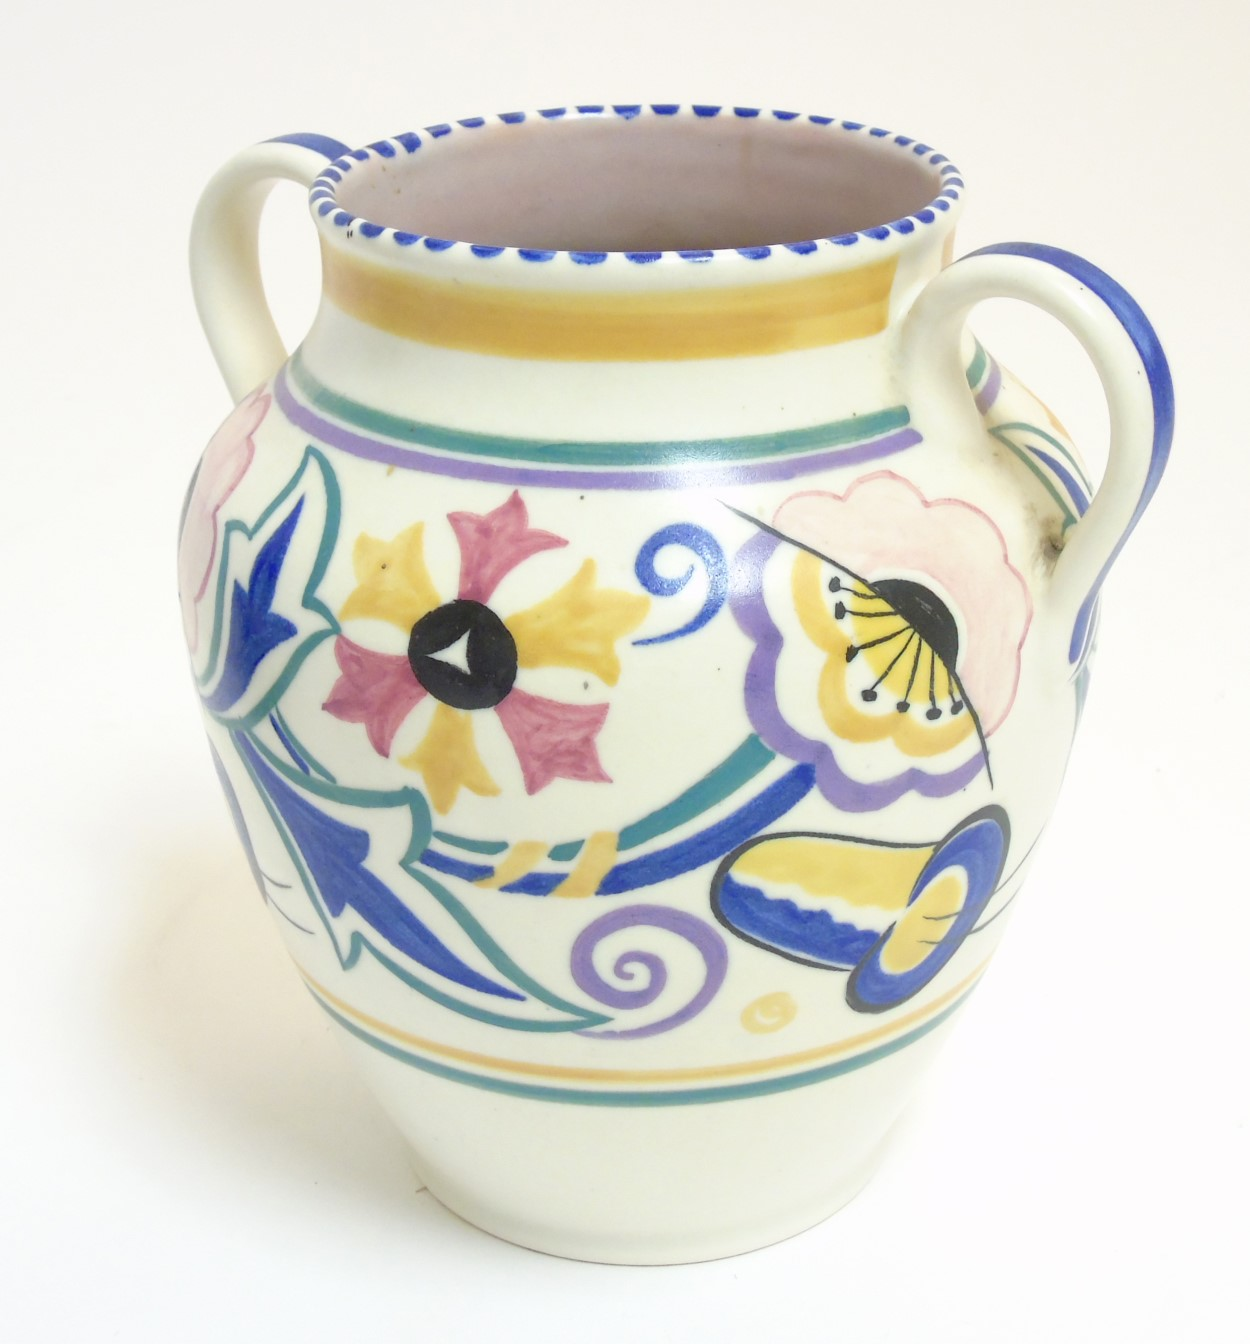 Lot 62 - A 1920/30s Poole Pottery traditional twin handled vase, shape 462,